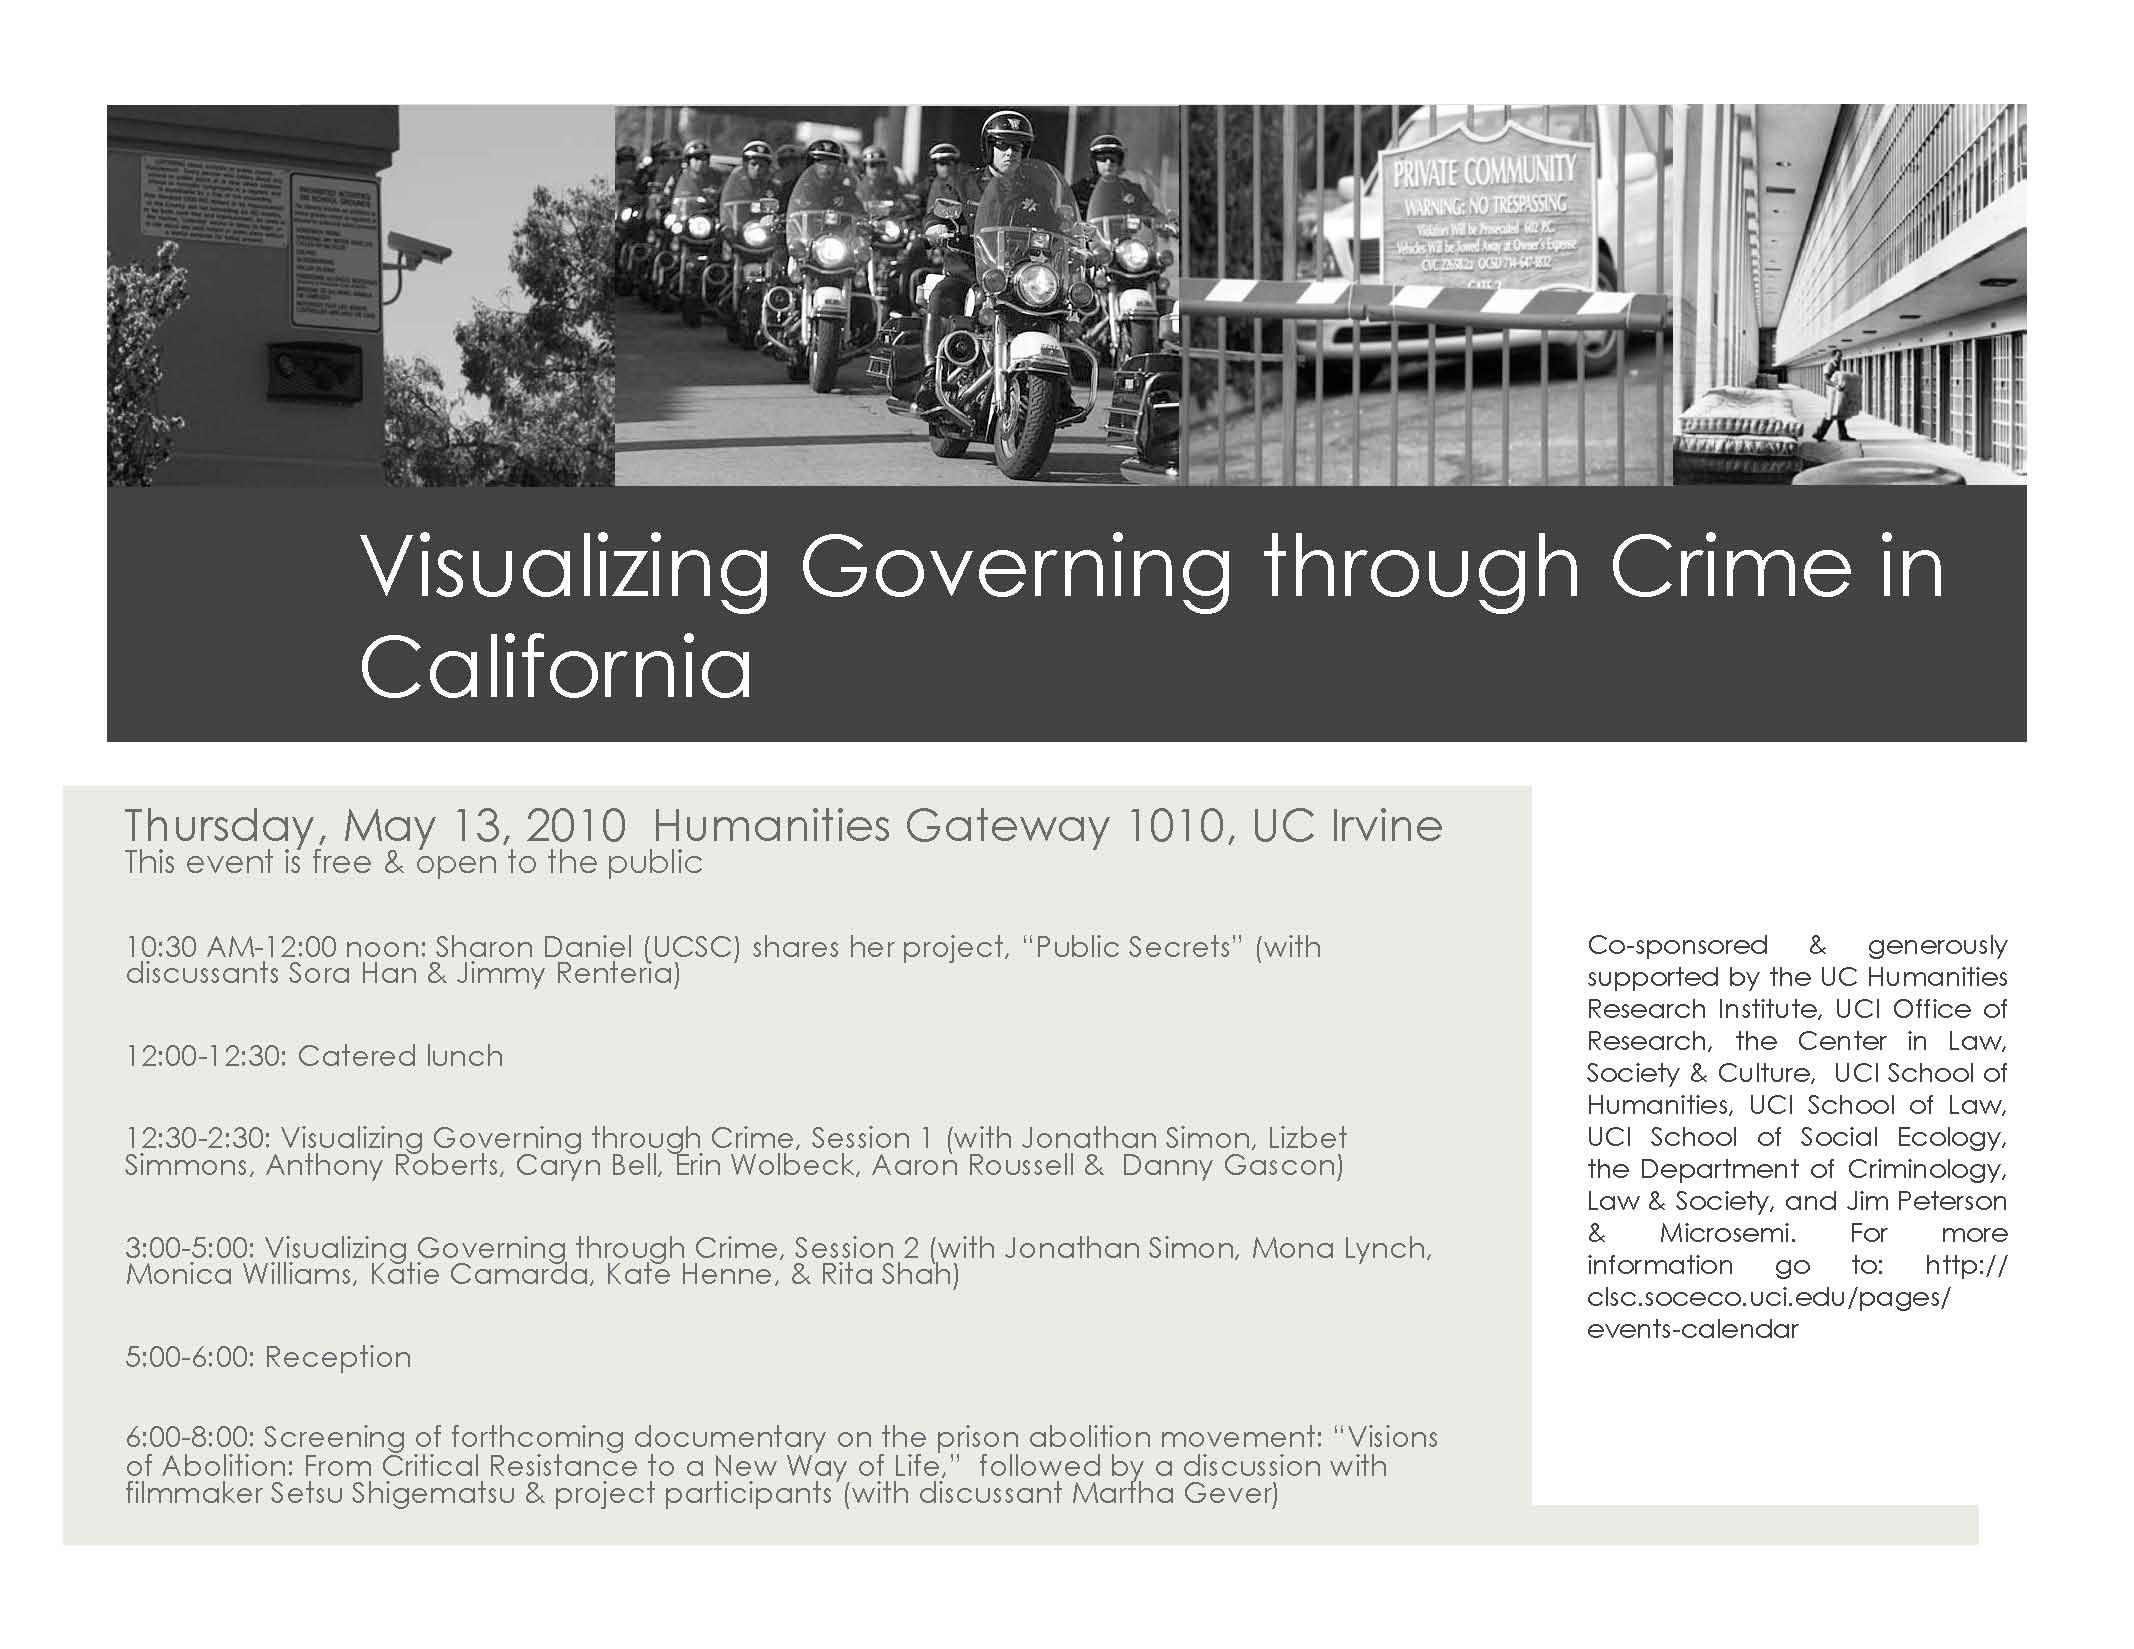 Visualizing Governing through Crime in California